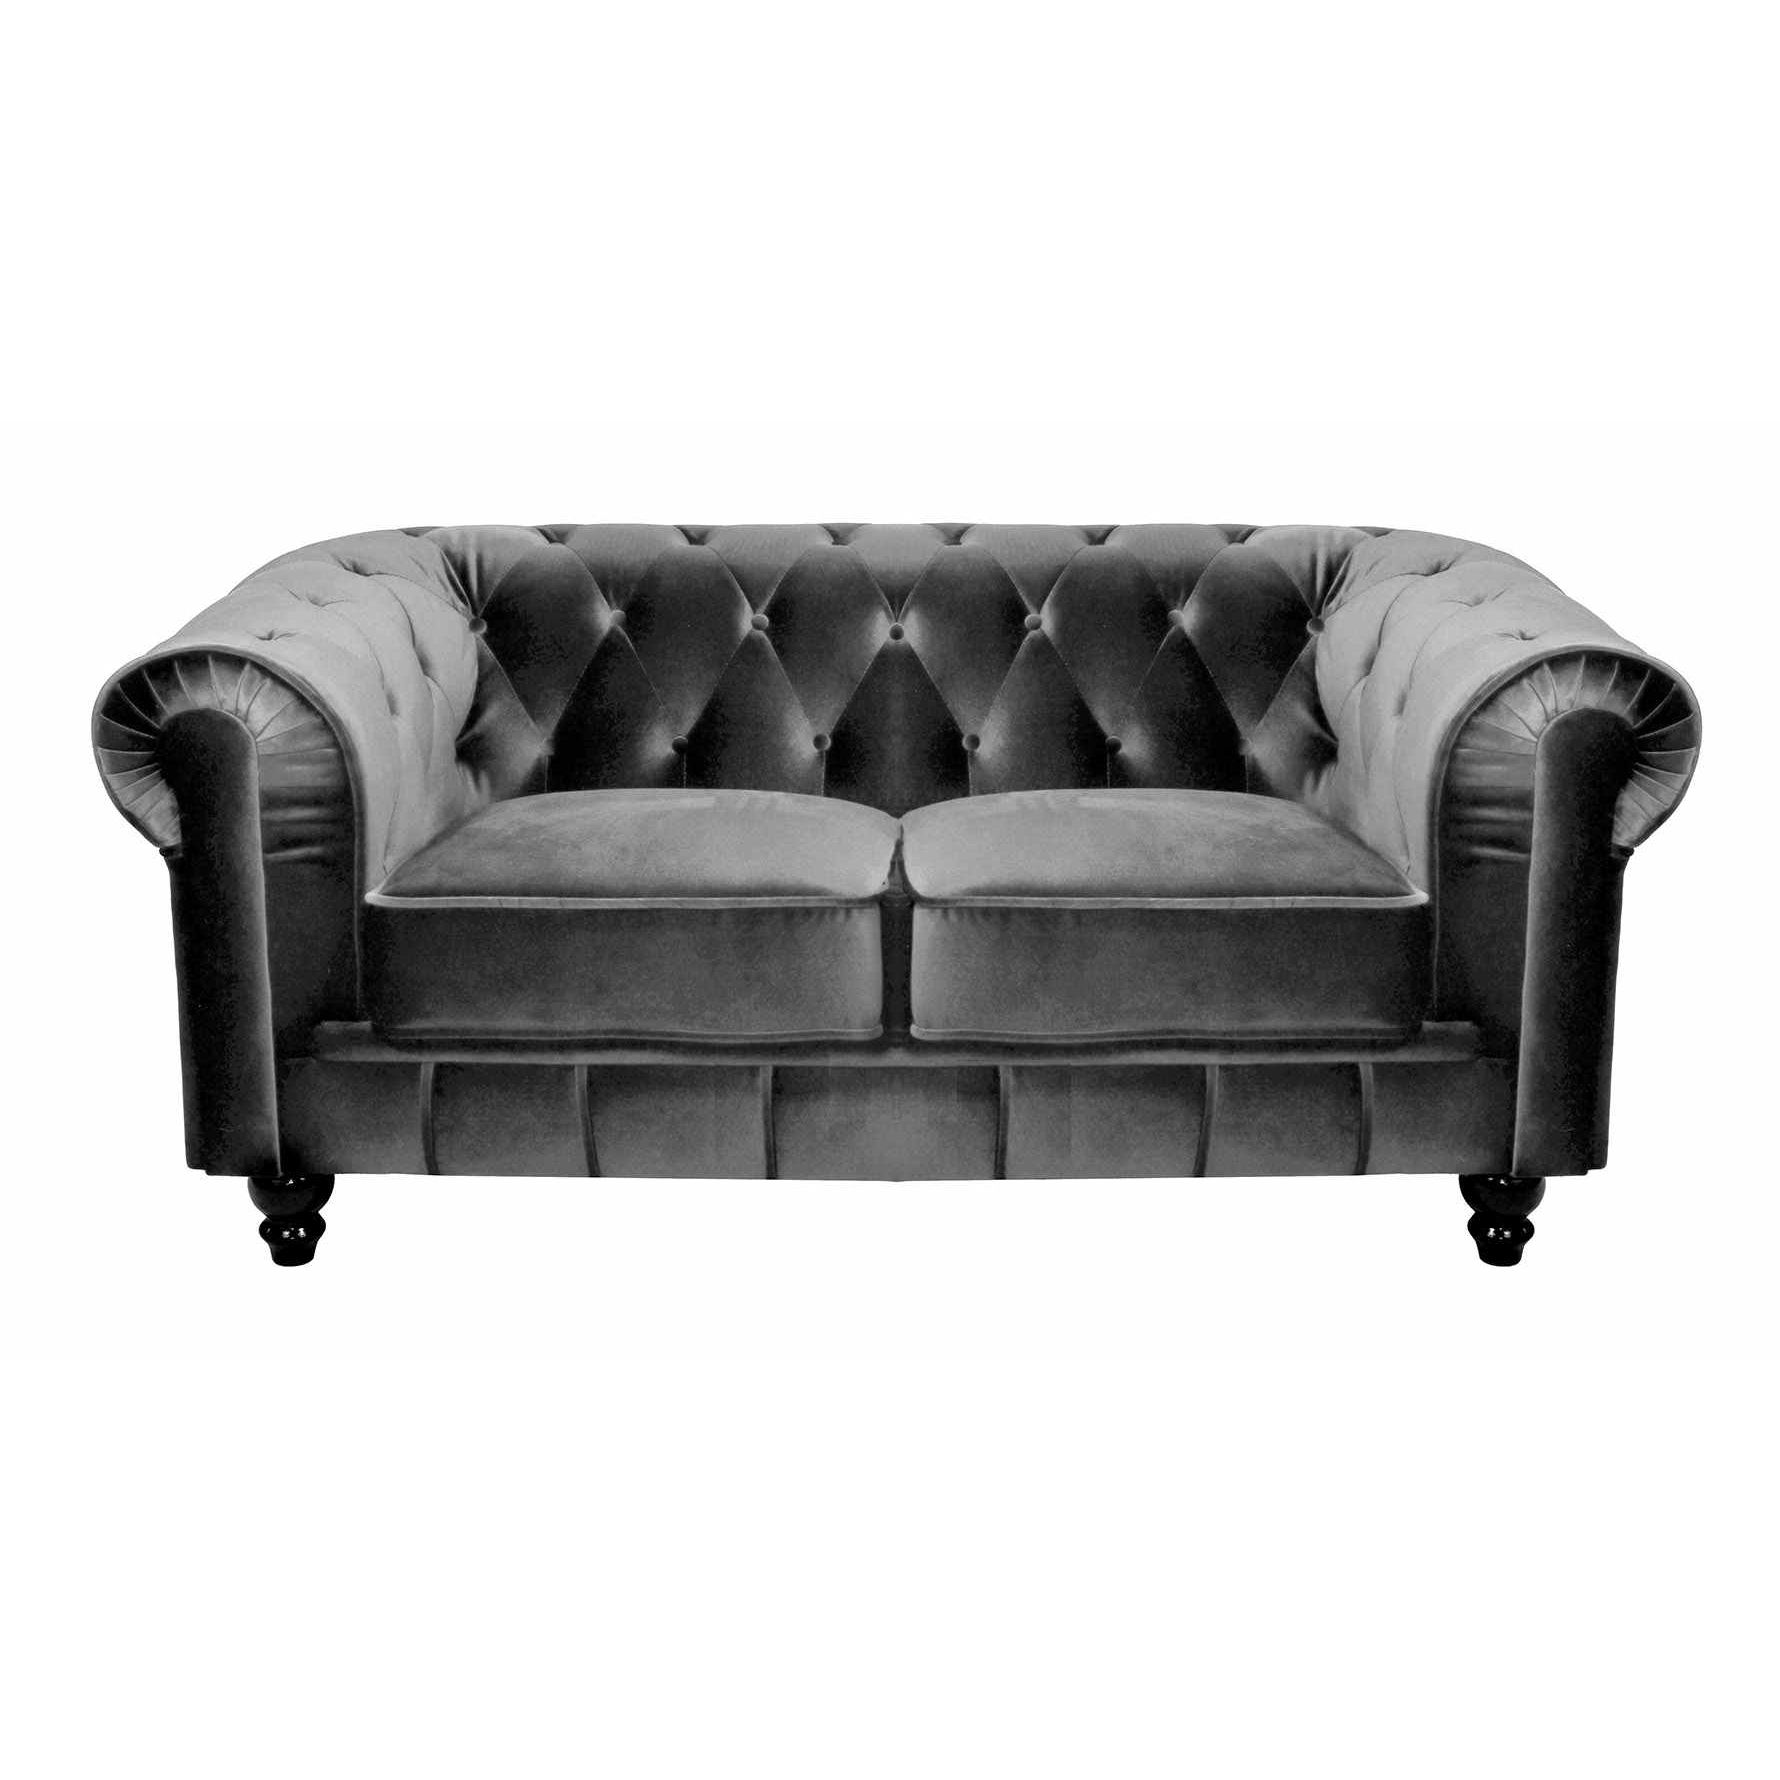 deco in paris canape 2 places velours gris chesterfield. Black Bedroom Furniture Sets. Home Design Ideas